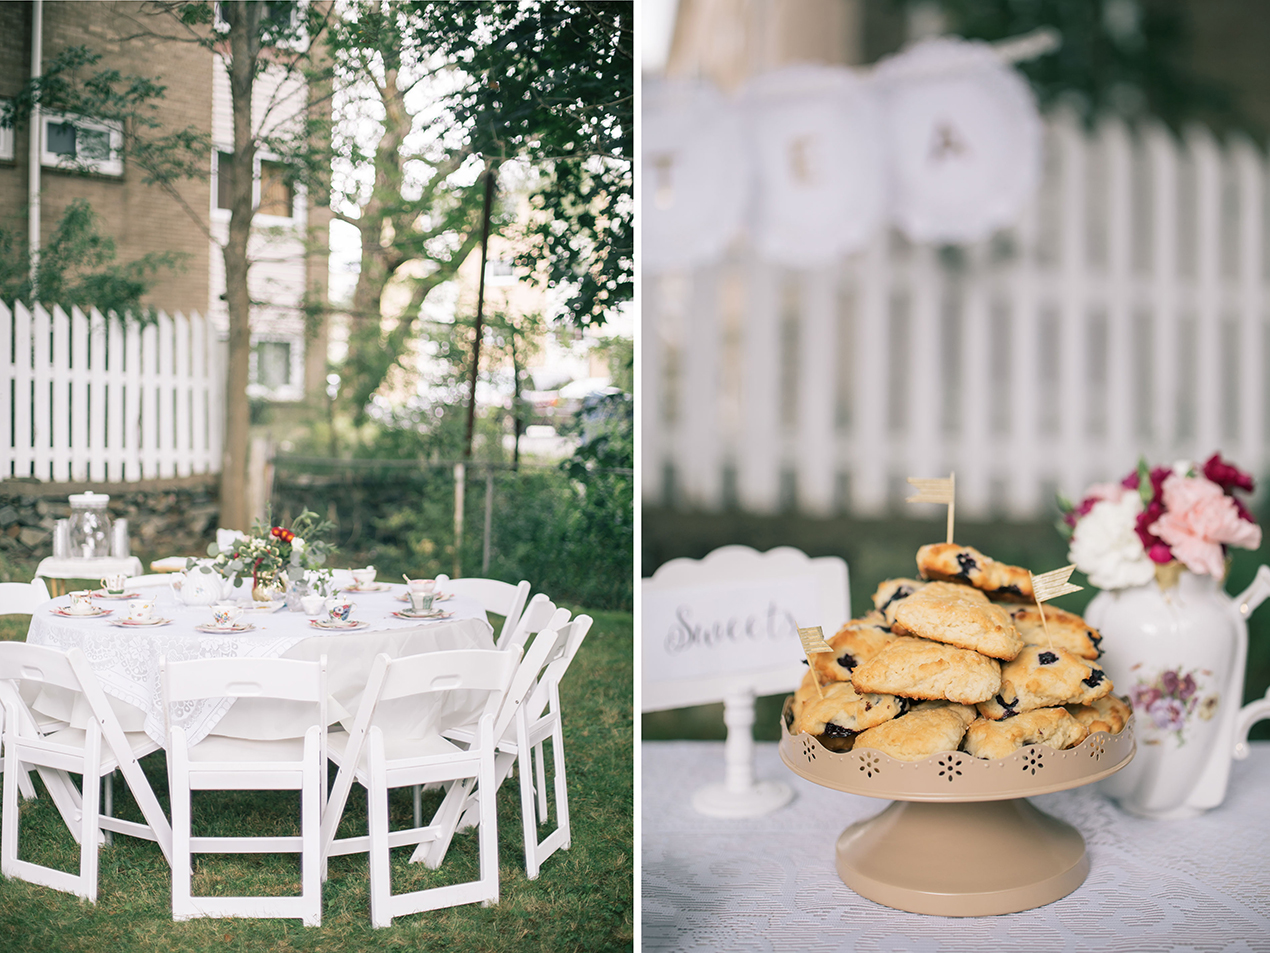 the white resin folding chairs were the perfect option for a high tea and really brightened up the space